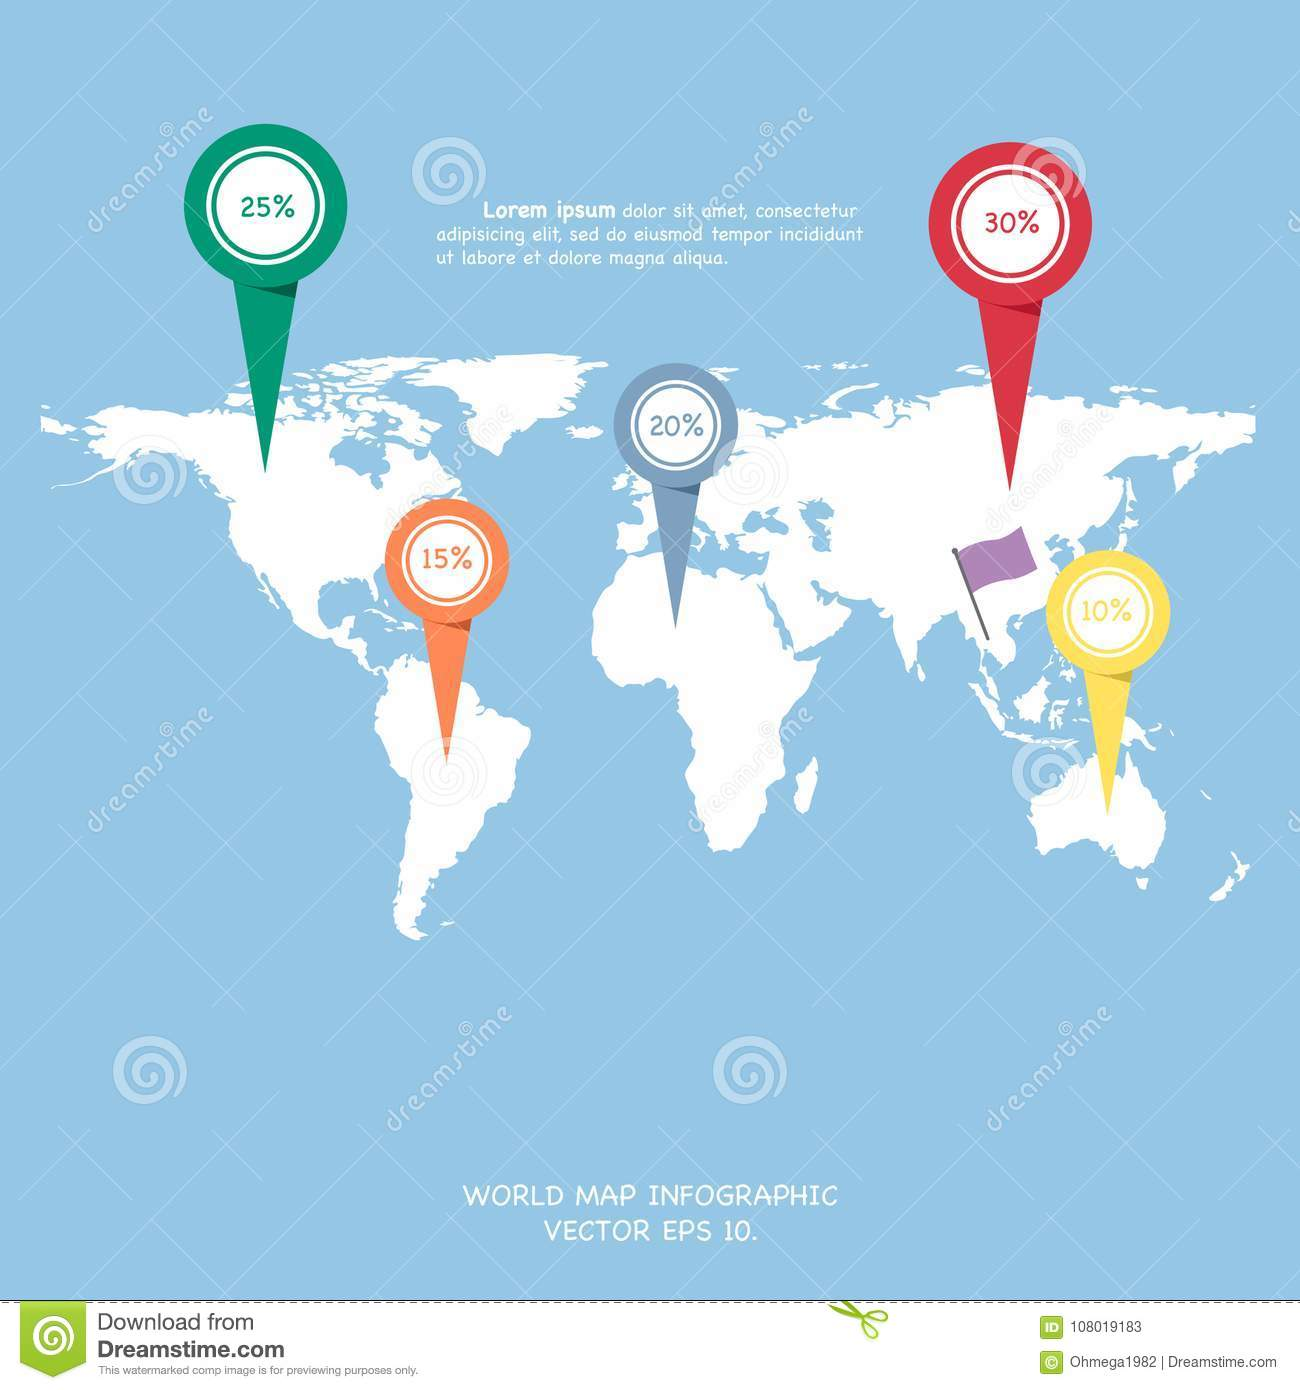 World map globe info graphic for communication concept stock vector download world map globe info graphic for communication concept stock vector illustration of creative freerunsca Image collections